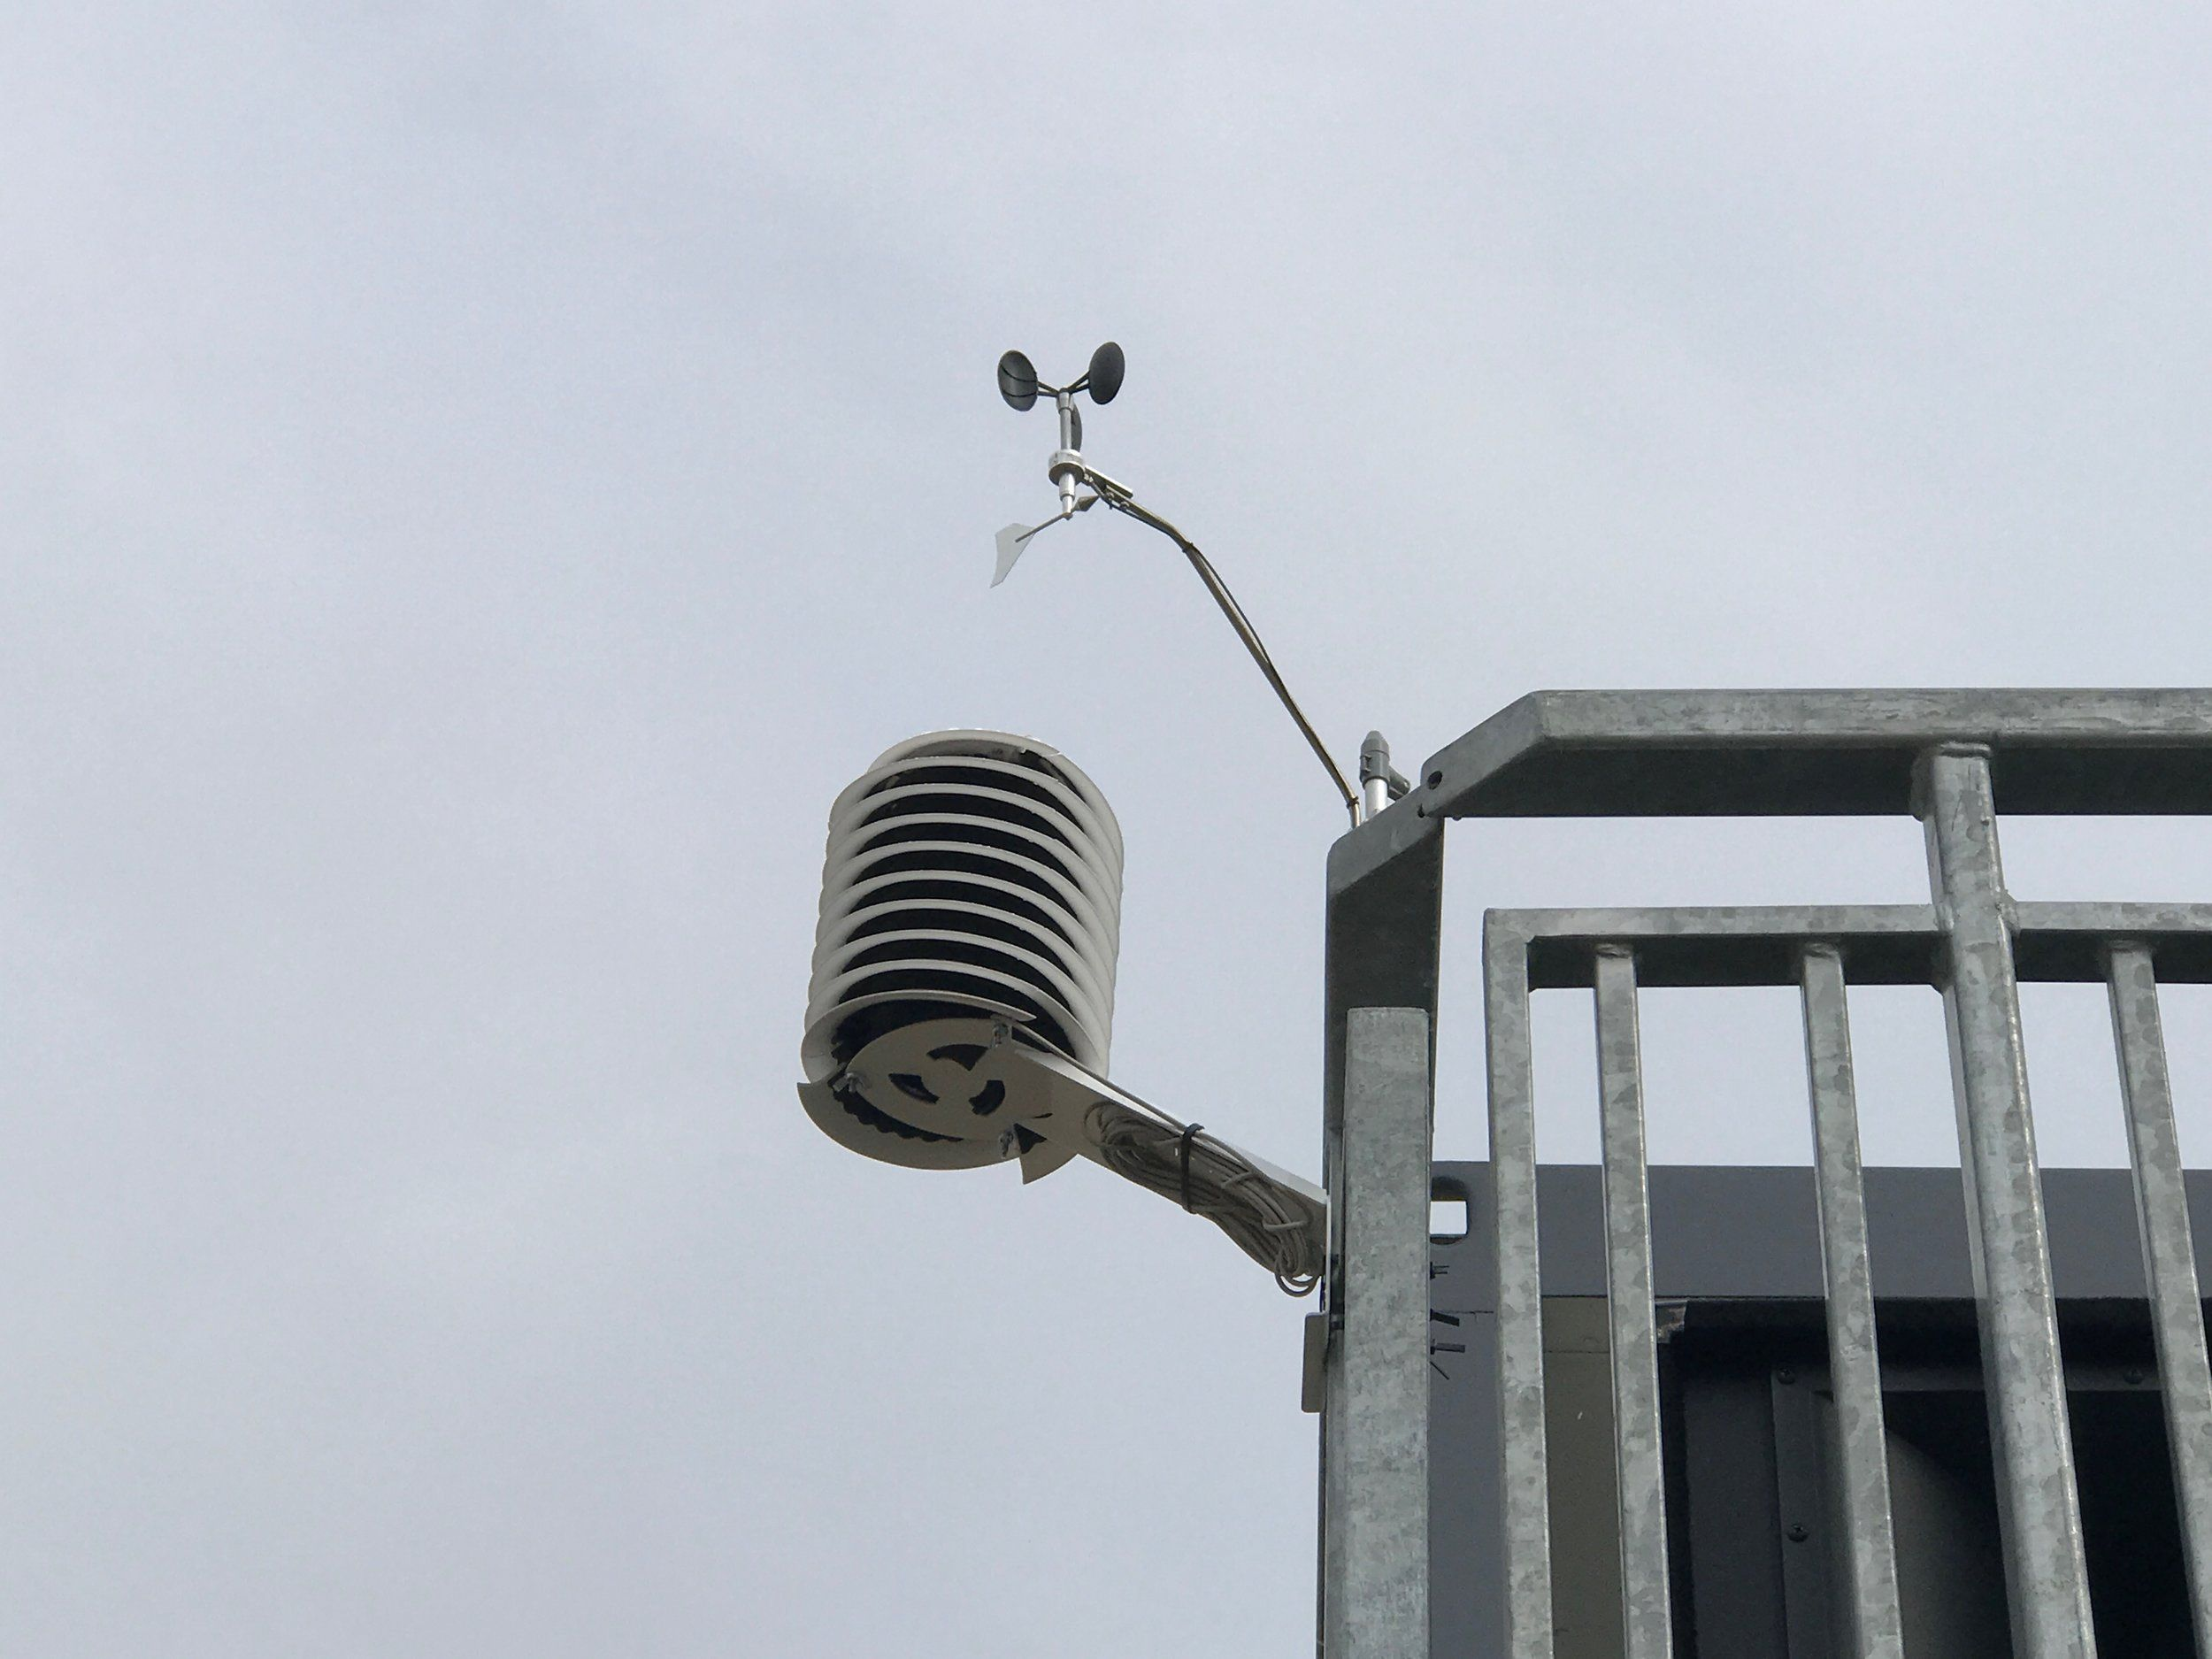 MeteoHelix® weather station watching over the